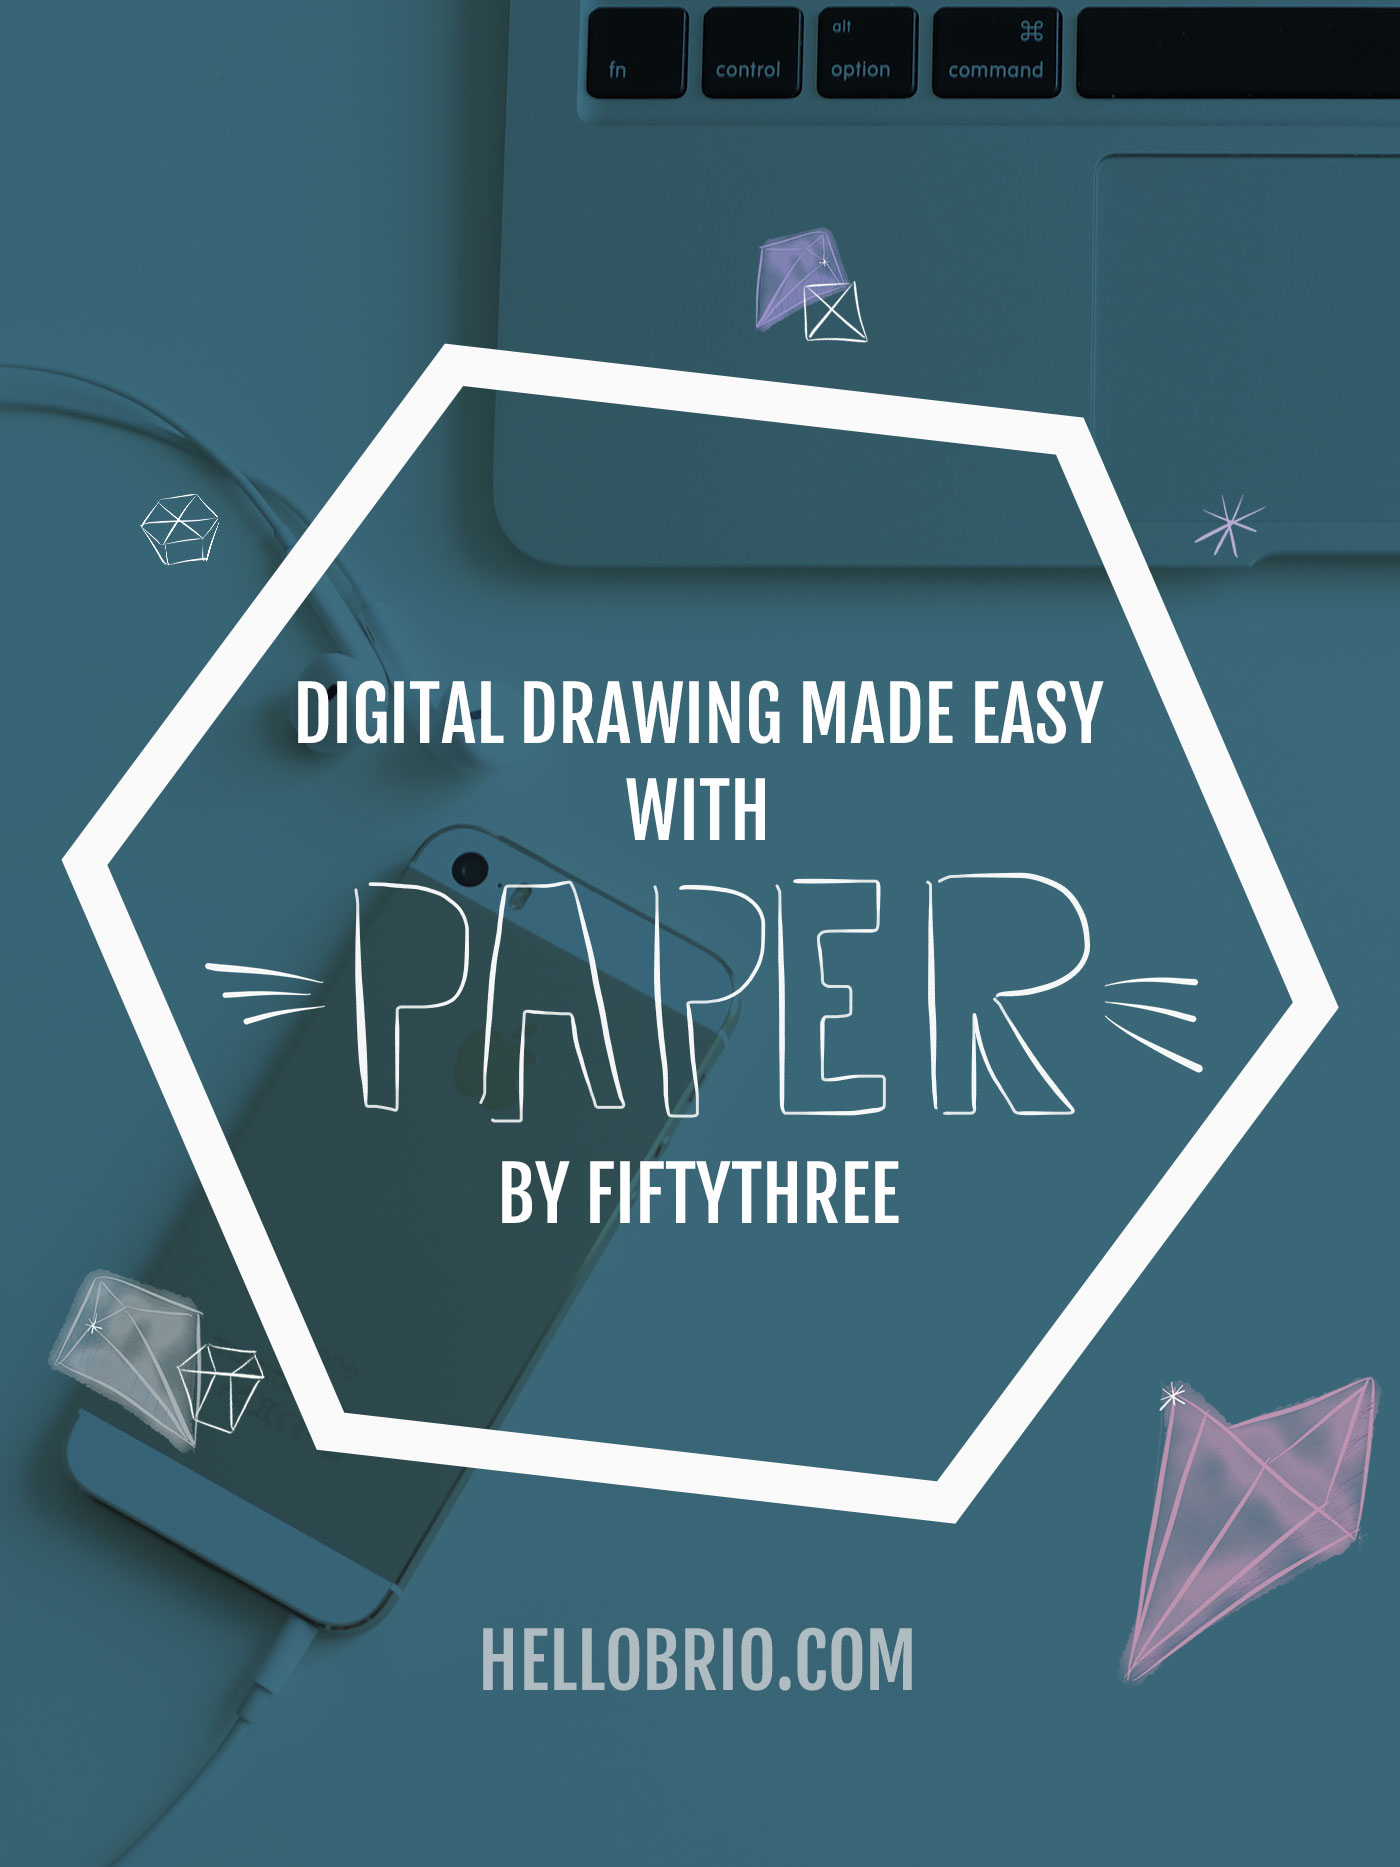 Digital drawing made easy with Paper by FiftyThree